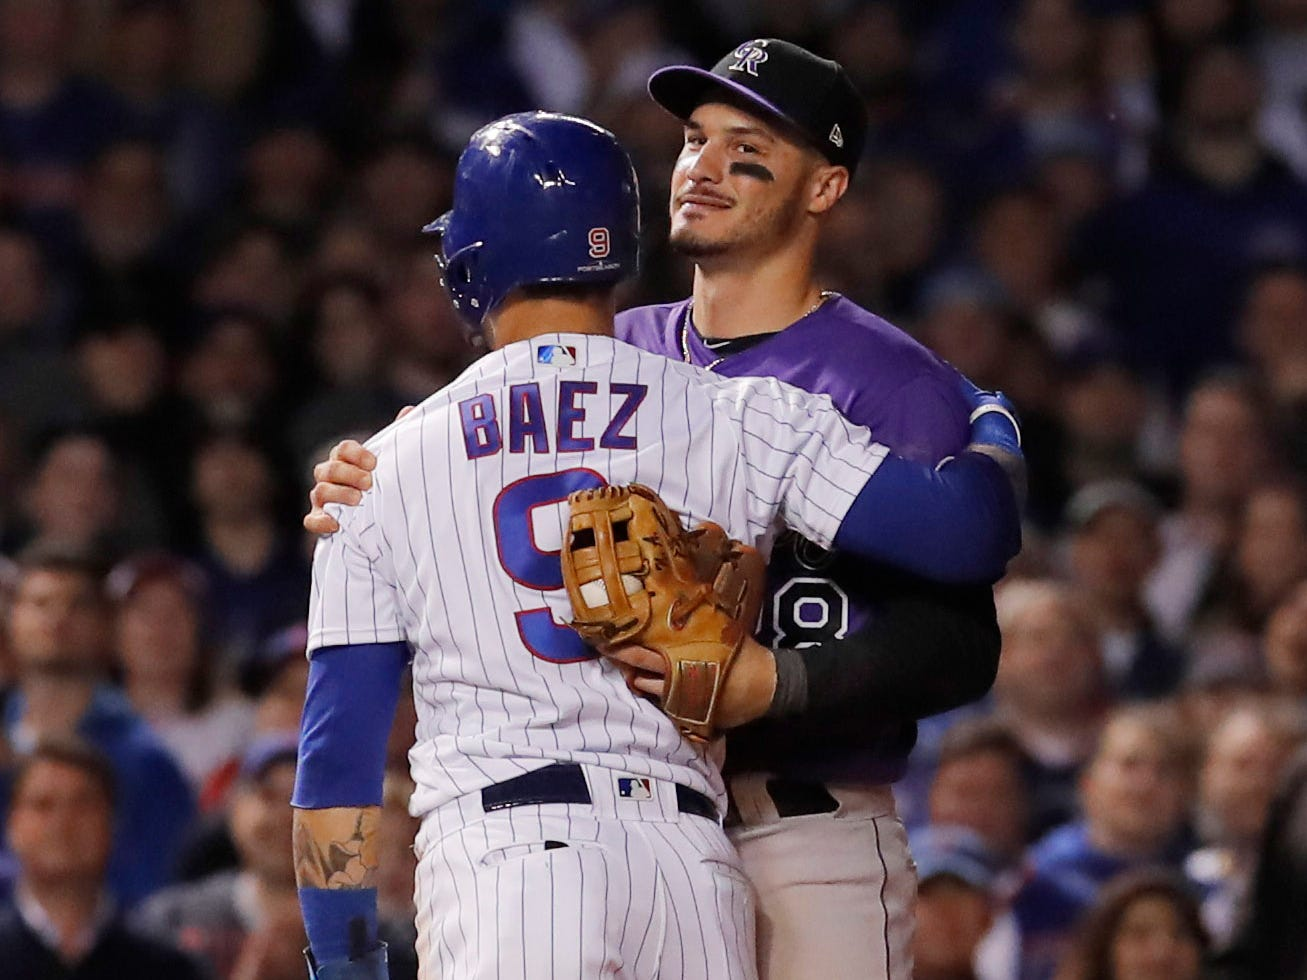 Oct 2, 2018; Chicago, IL, USA; Chicago Cubs shortstop Javier Baez (9) hugs Colorado Rockies third baseman Nolan Arenado (28) after being tagged out in the 11th inning in the 2018 National League wild card playoff baseball game at Wrigley Field.